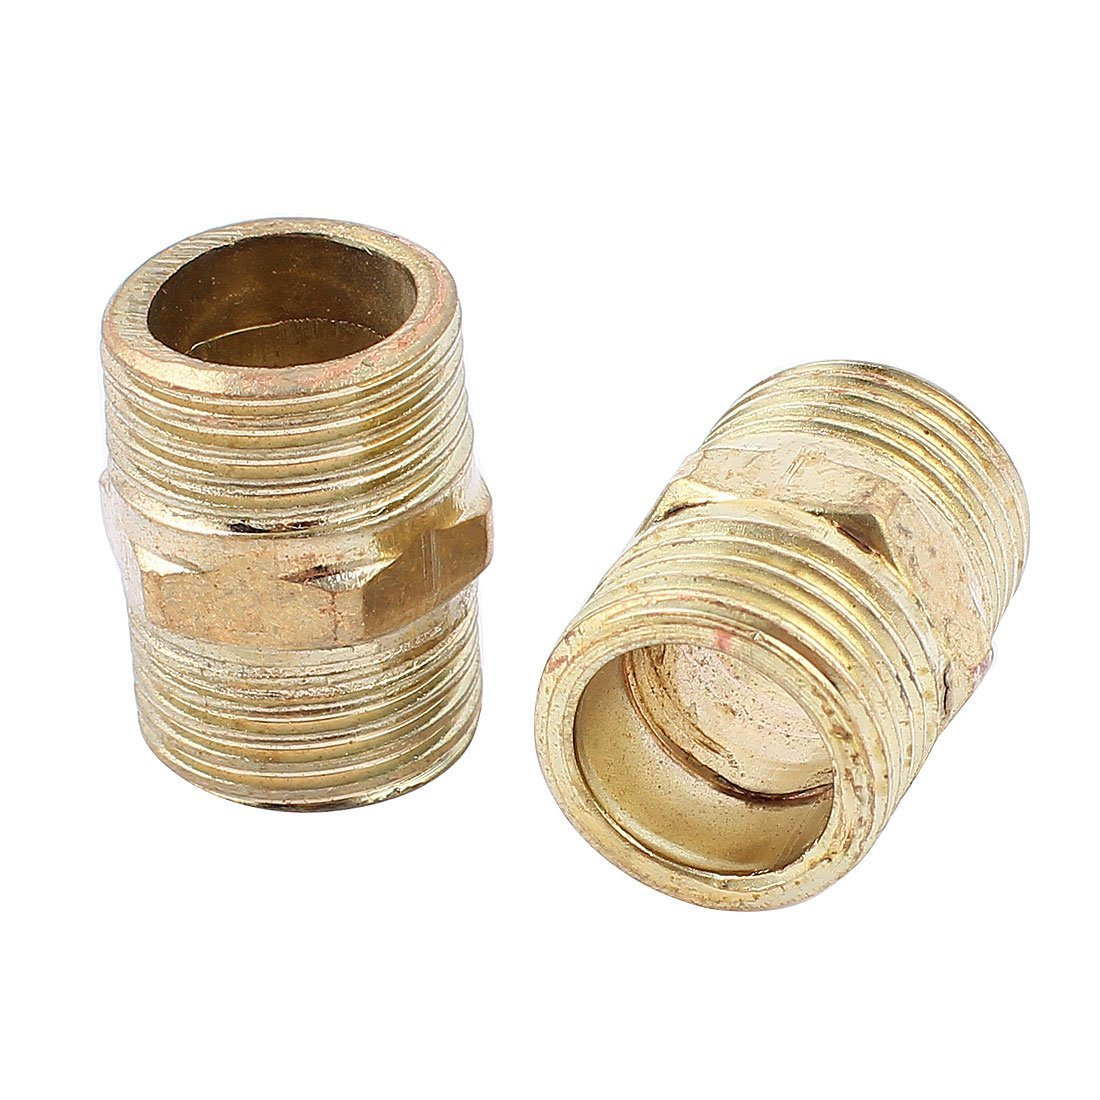 sourcingmap® Brass 1/2BSP x 1/2BSP Male Hex Nipple Connector Adapter 27mm Long 2Pcs a15043000ux0107